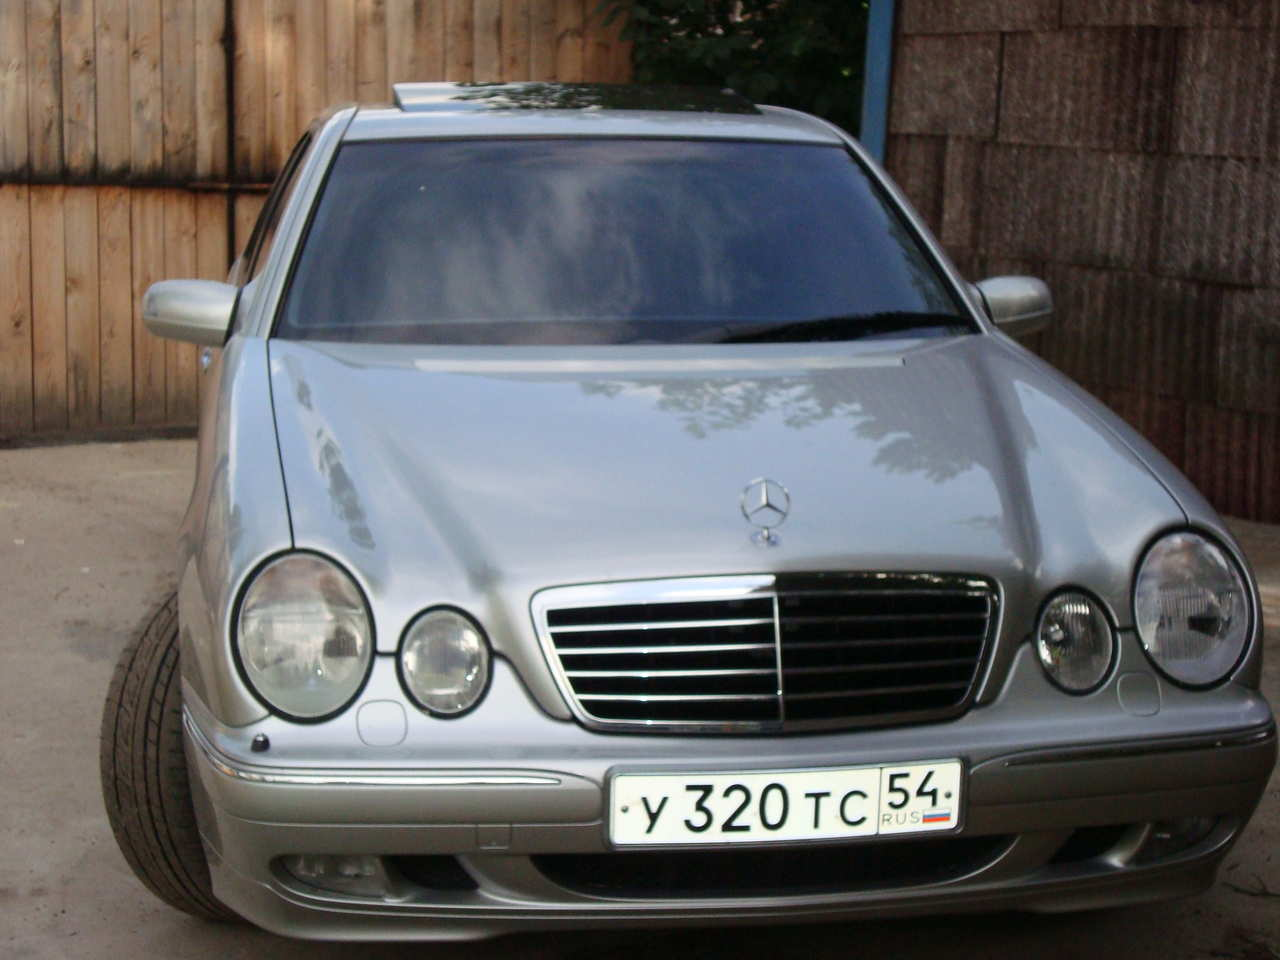 Used 2001 mercedes benz e class photos 3200cc gasoline for 2001 mercedes benz e320 for sale